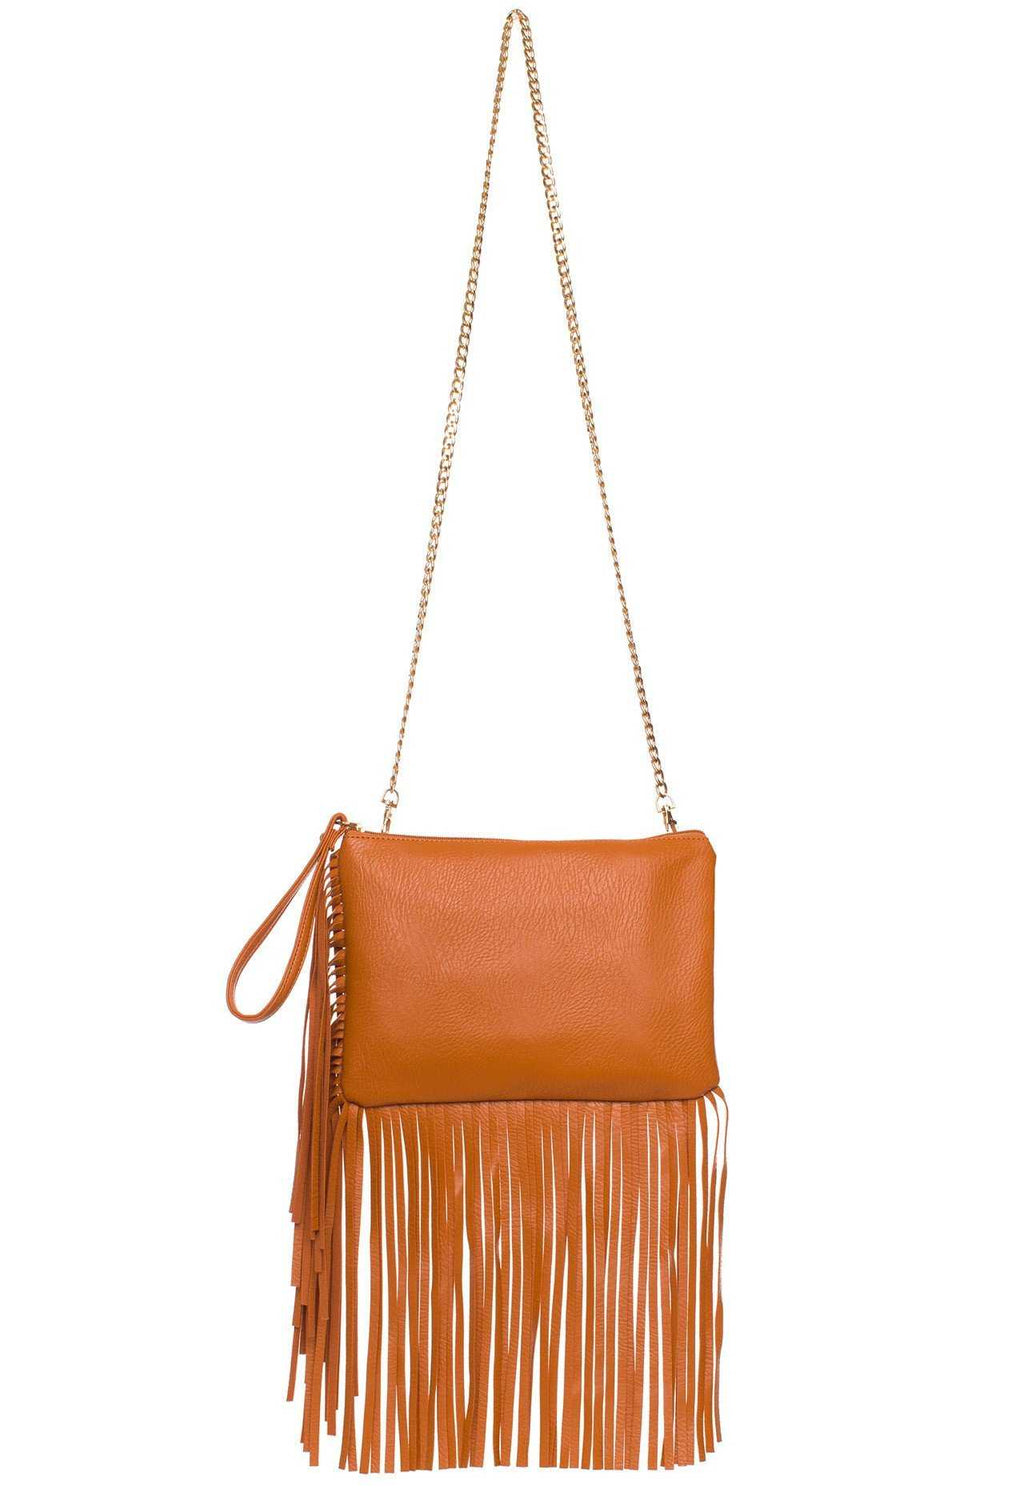 Accessories - Dream Chaser Fringe Purse - Tan